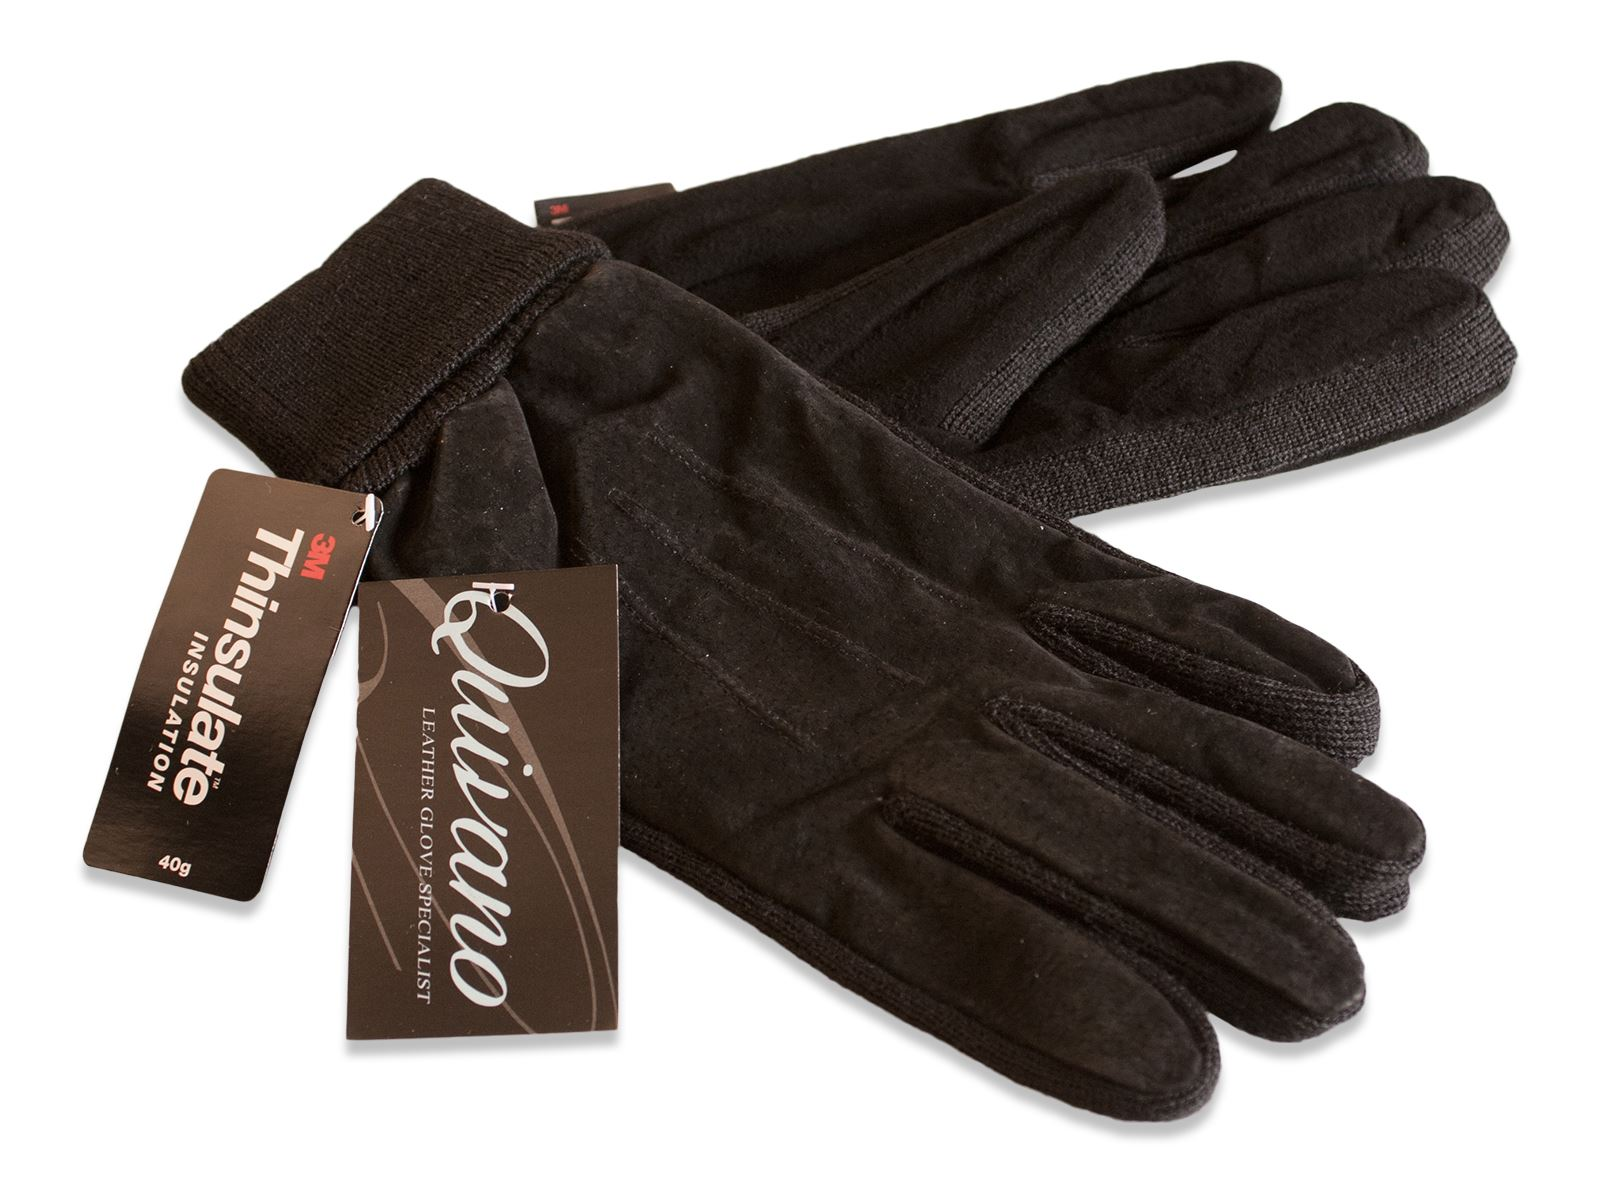 Womens leather gloves thinsulate lining - Picture 2 Of 16